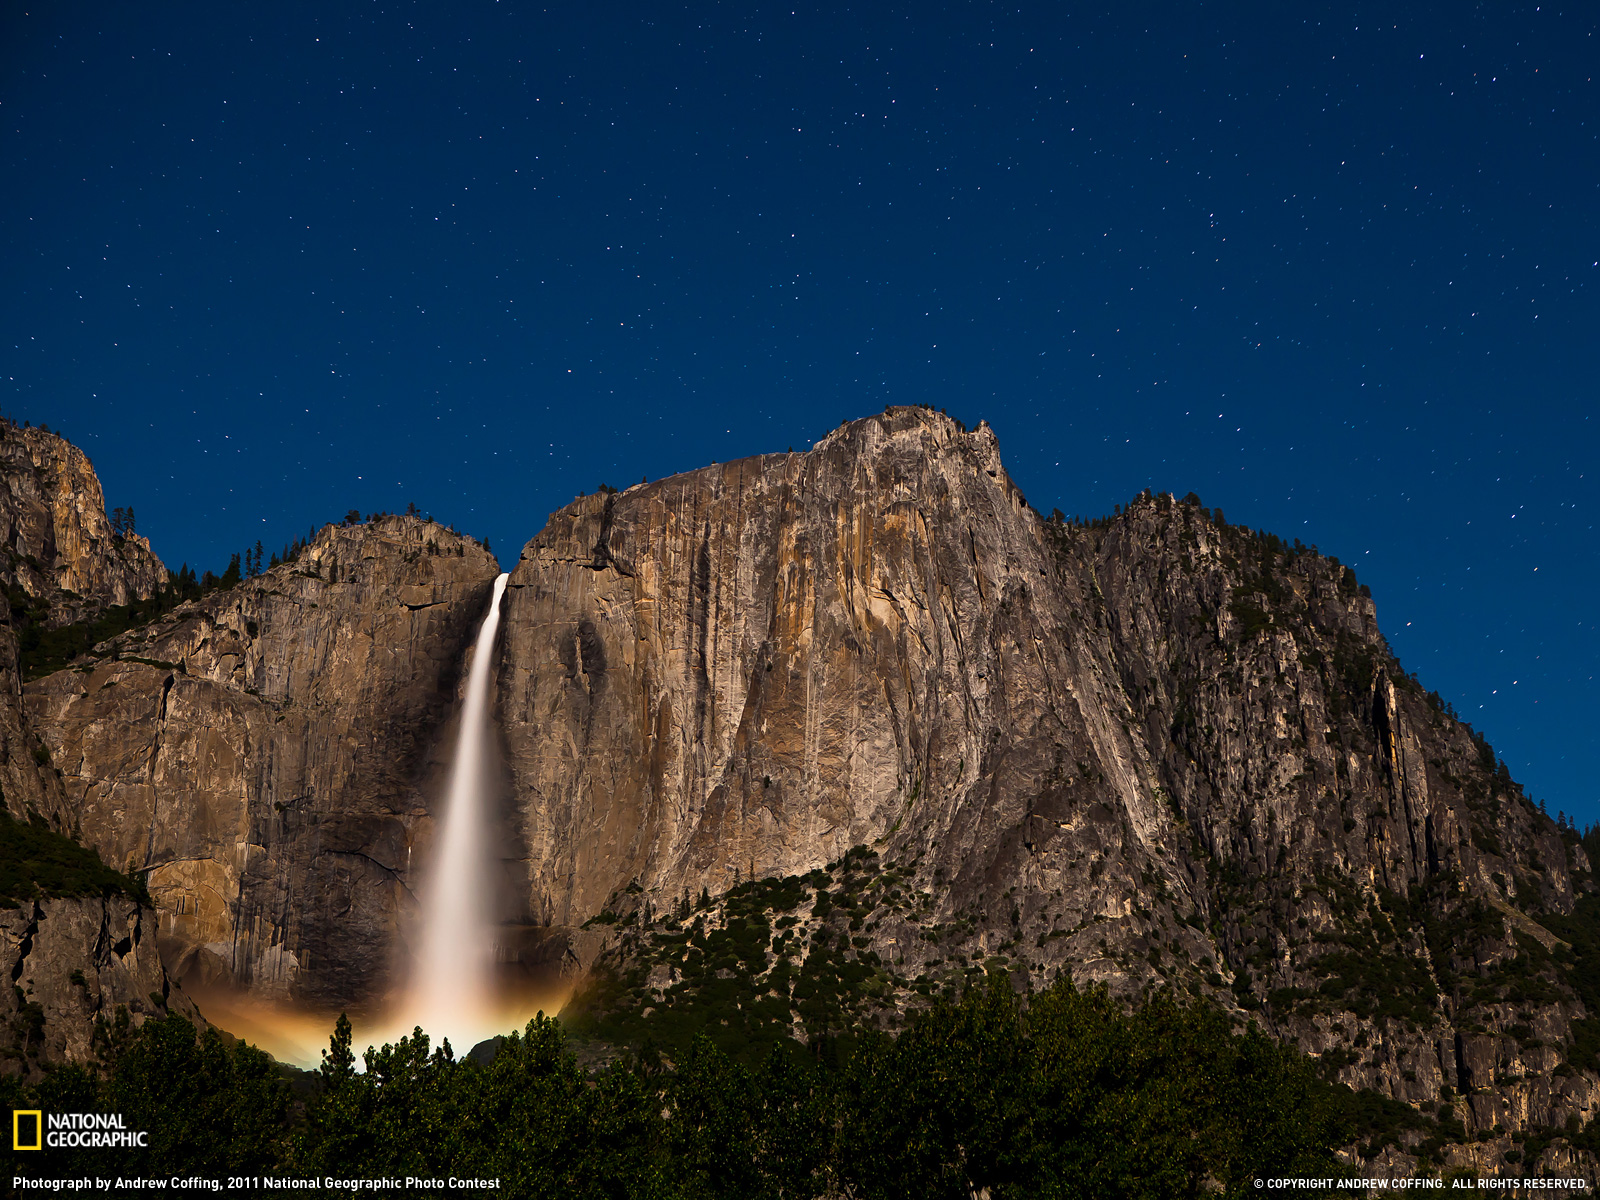 National Park Wallpaper   National Geographic Photo of the Day 1600x1200